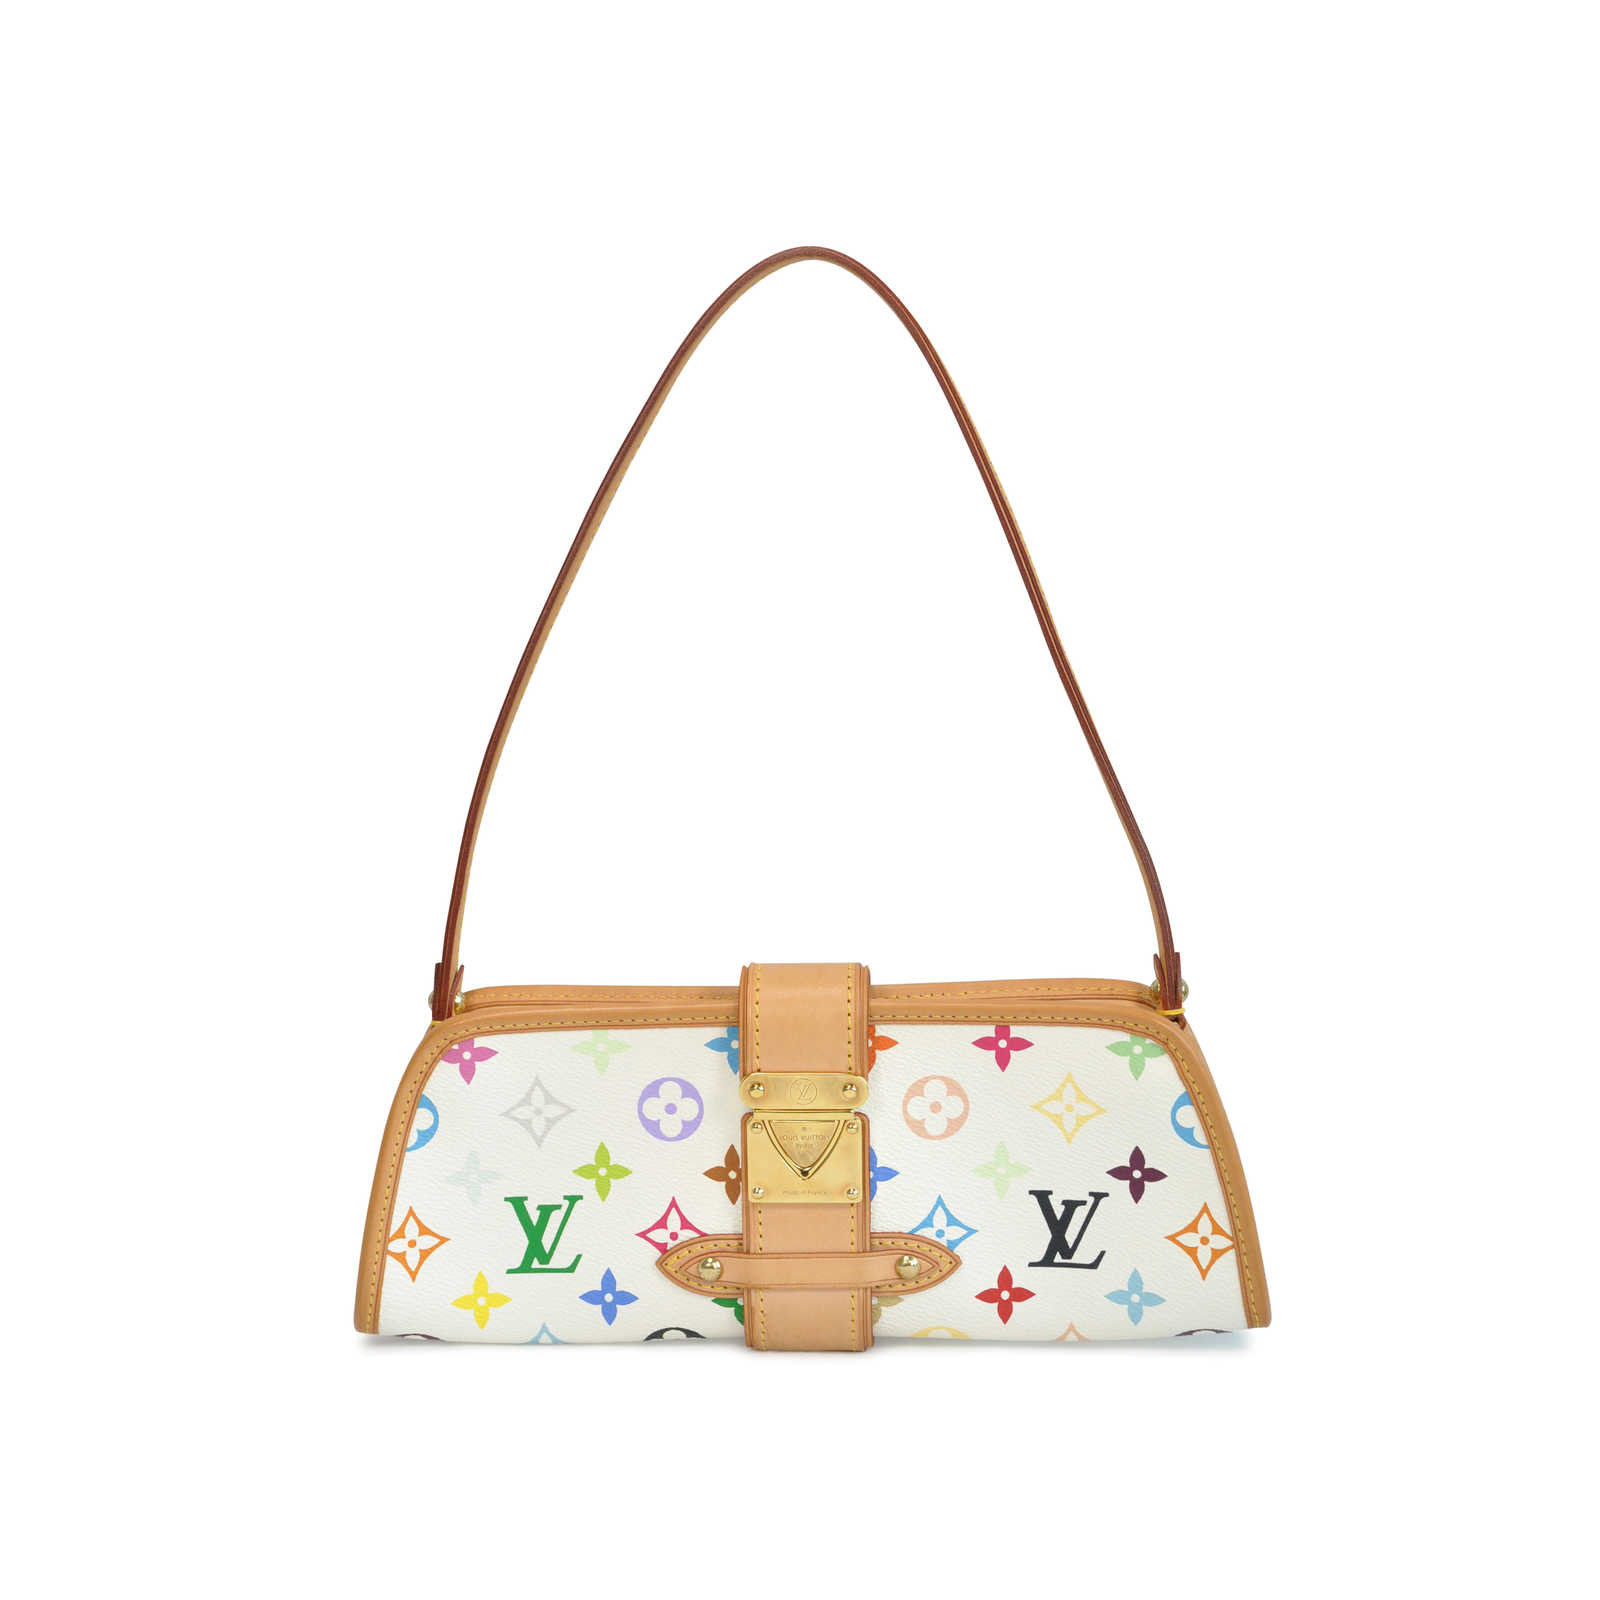 Tap to expand · Authentic Pre Owned Louis Vuitton Shirley Monogram Bag  (PSS-130-00004) ... 4f3bd1fe817b4